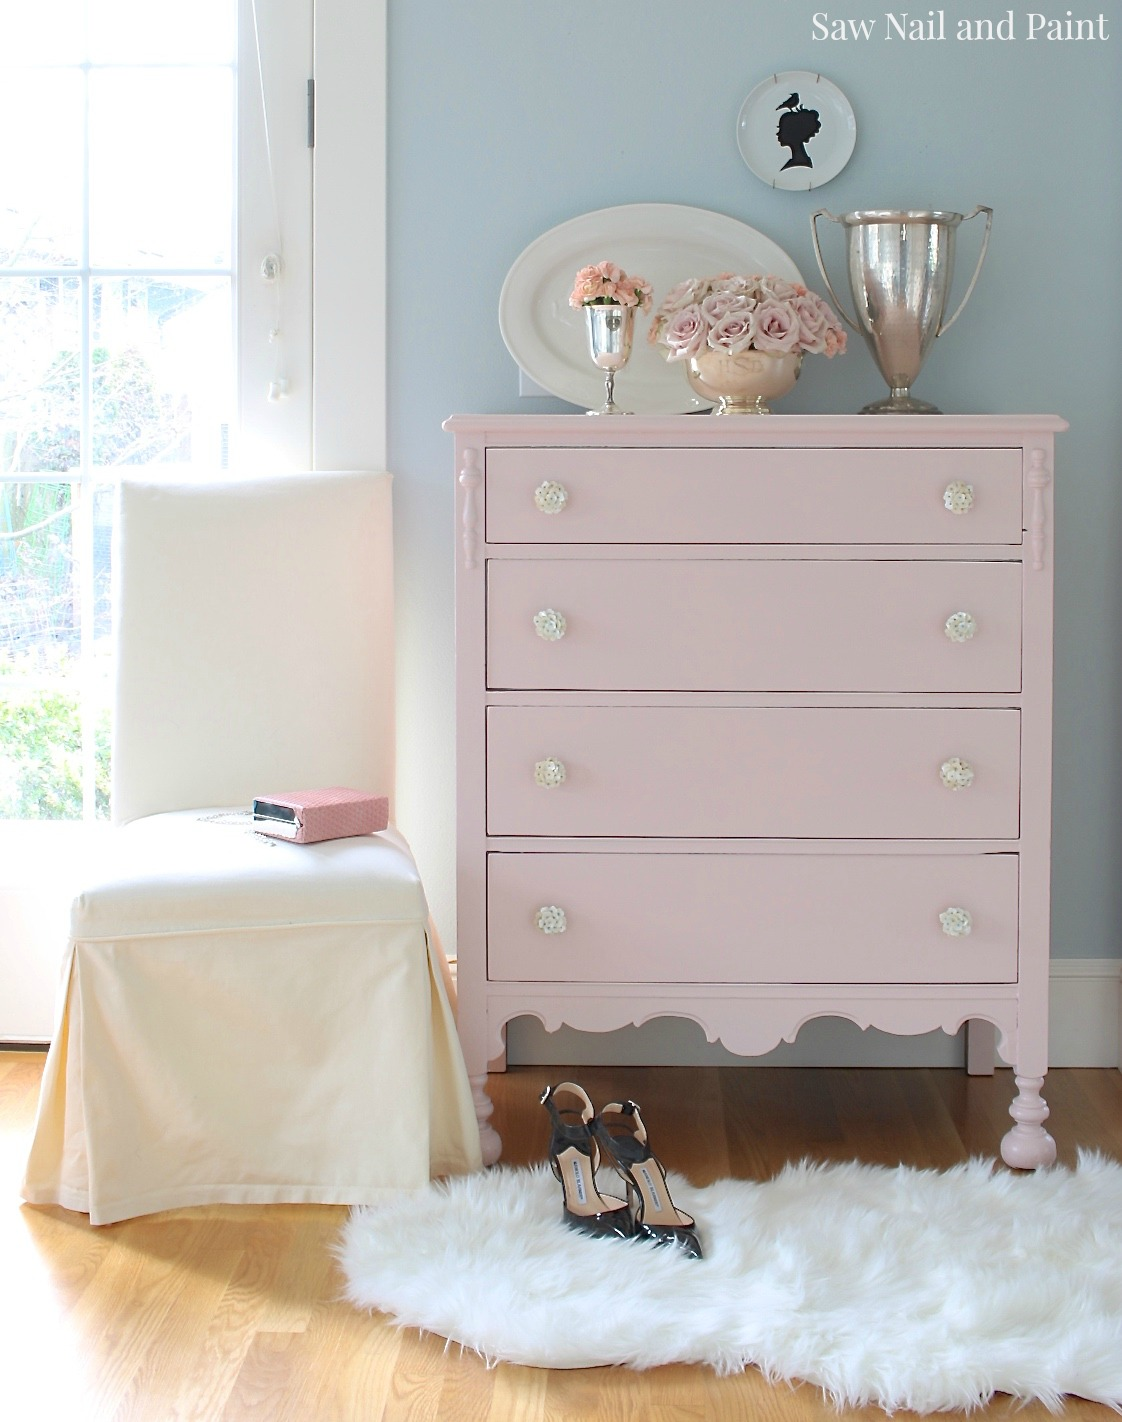 Blush Pink Vintage Dresser Saw Nail And Paint